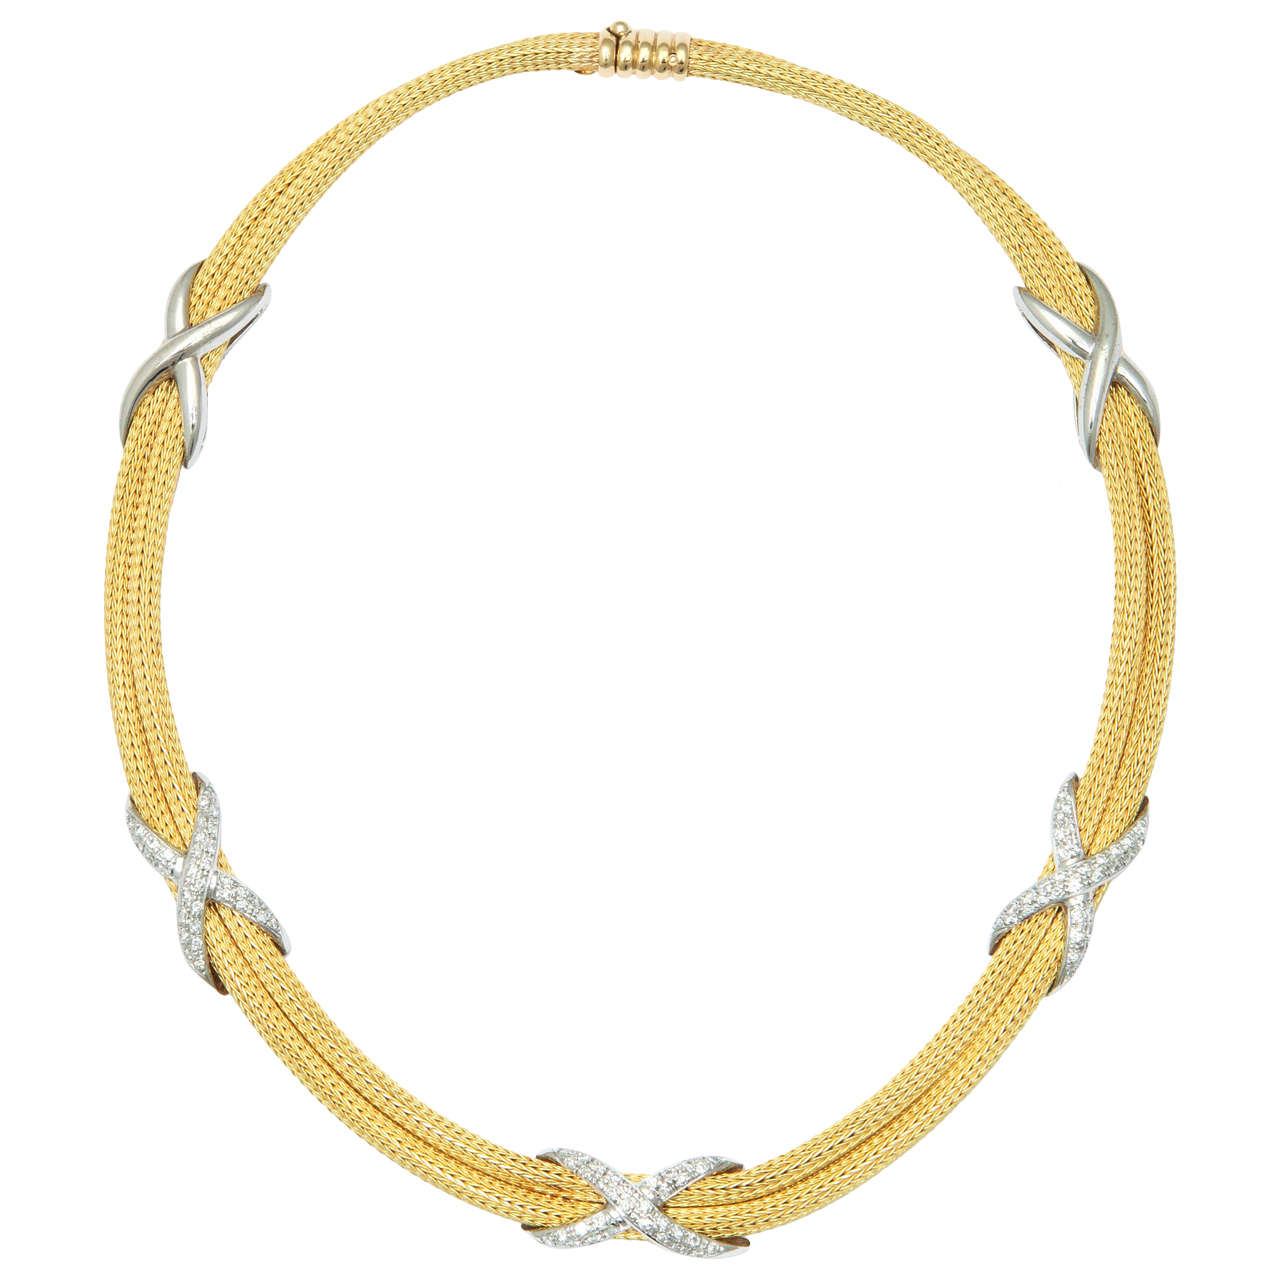 Woven Gold Necklace with Diamond Criss Cross Adornments at 1stdibs